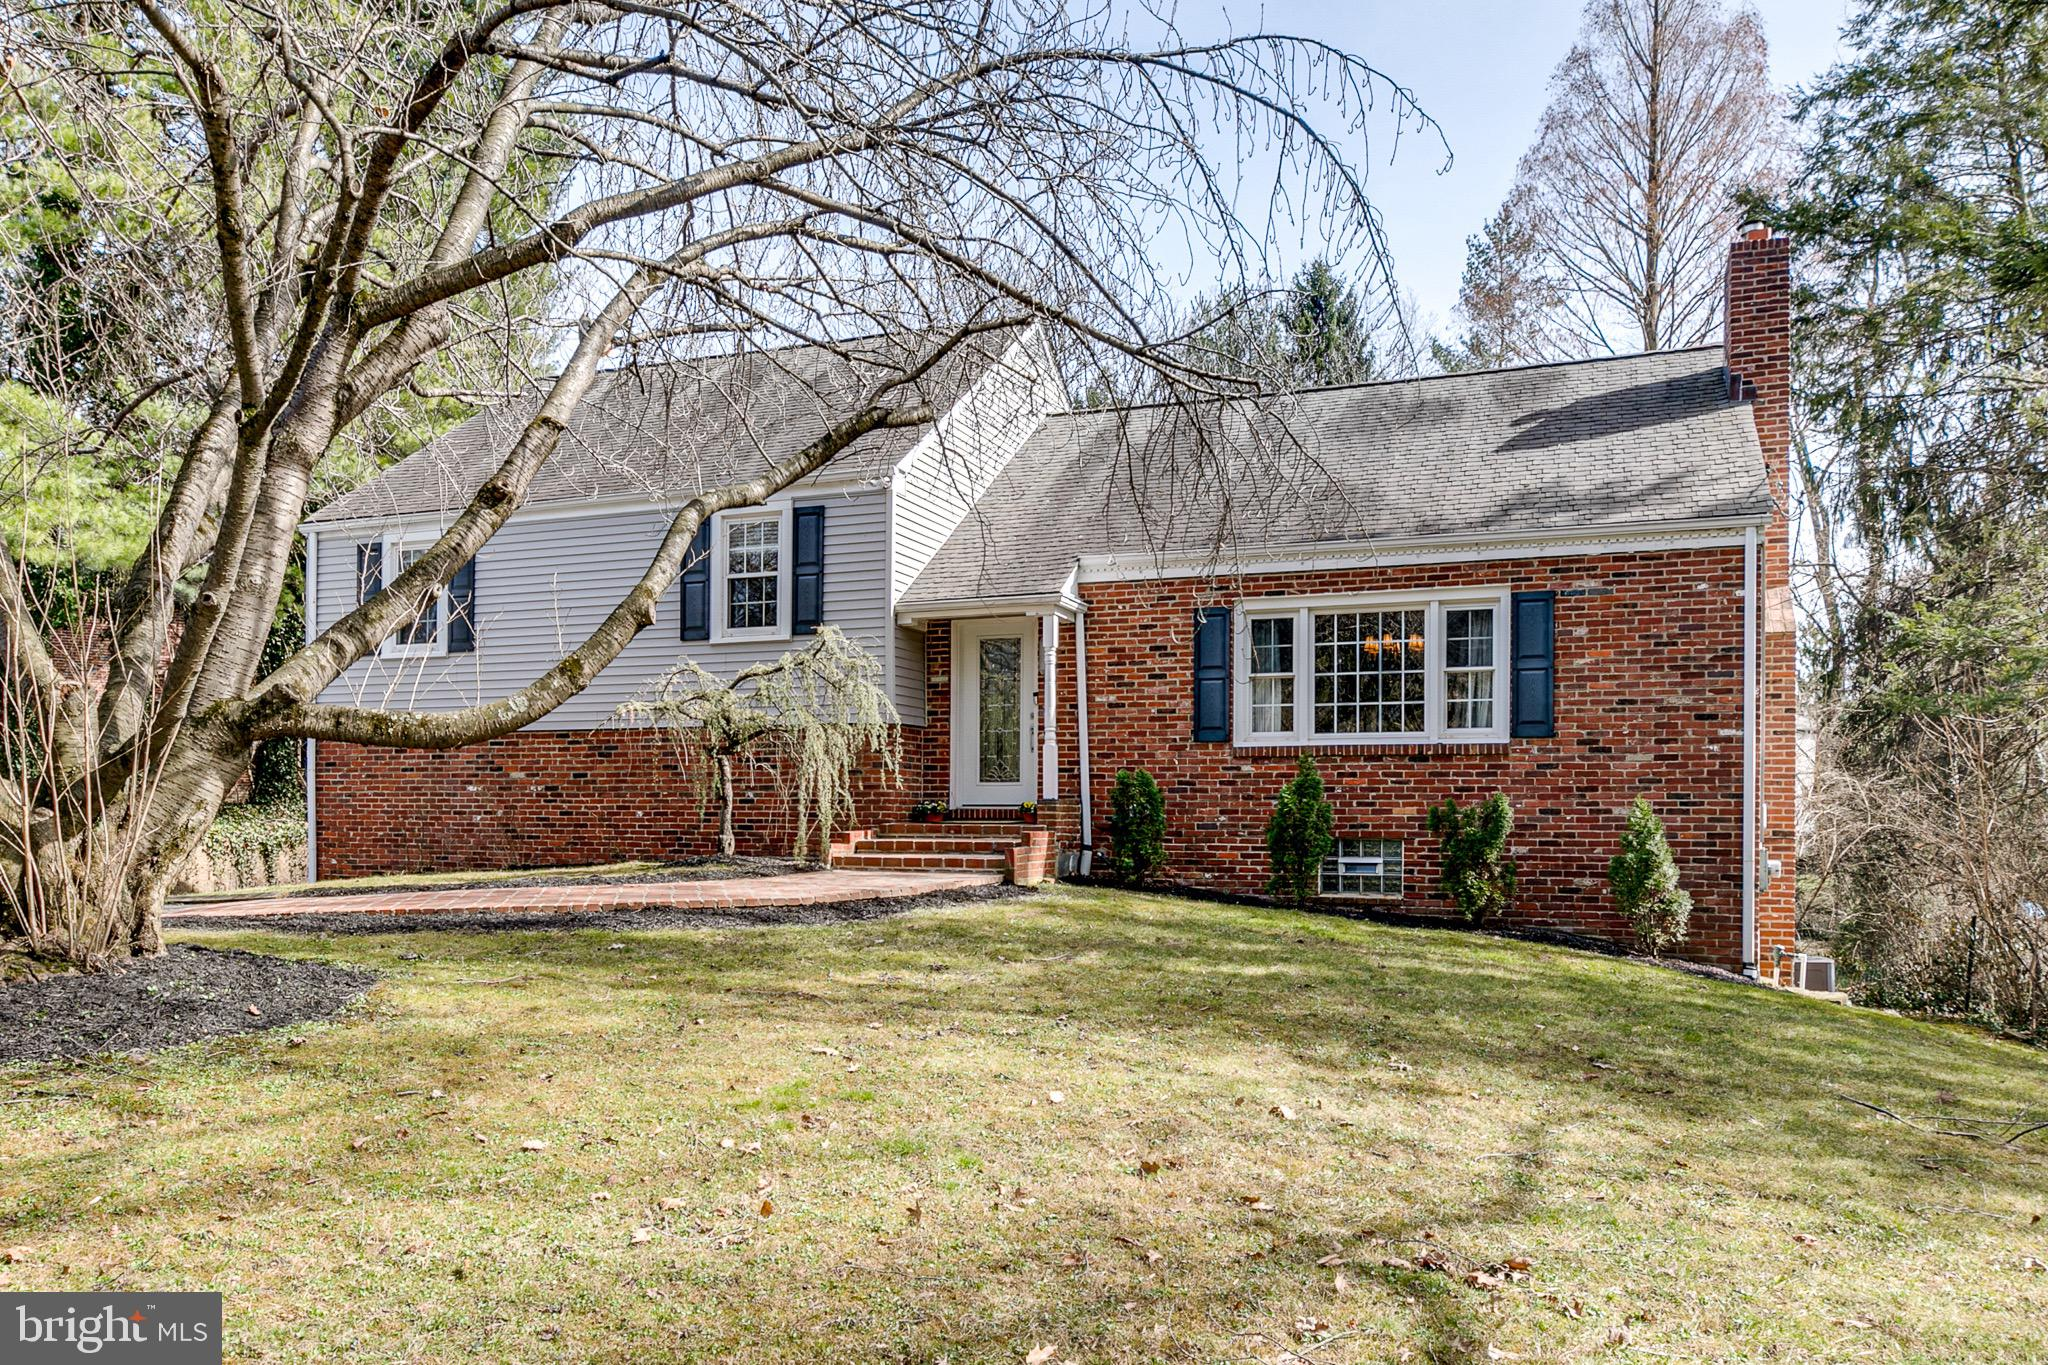 Located in the desirable Villanova neighborhood of Radnor Township, this split level home of 4 bedrooms, 2.5 bathrooms and a finished basement sits beautifully on almost a half acre of private grounds, which include a large built-in pool. An open floor plan creates an abundance of natural light throughout this updated modern gem.  The first floor offers a large living and dining area with a wood burning fireplace, a family room with vaulted ceilings, a spacious gourmet kitchen with custom cabinetry, stainless steel appliances, granite countertops, breakfast bar, and breakfast area. The second floor has a master bedroom with an en-suite & walk- in closet, two large and sunny bedrooms, and an updated hall bathroom. A few steps up to the third floor is a sizable fourth bedroom plus a large finished room that can be used as an office, playroom, or study.  The lower level, which was recently renovated, is currently used as a workout area, recreation room, and a large family room. The lower level provides rear door access to the patio, back yard and pool area - perfect for summer entertaining. Recent updates were: painting the interior in soothing neutral colors; security system and cameras; GE washer & dryer; GE Profile Wifi double oven & microwave; tile flooring in laundry room and lower level.  A prime Radnor location in the highly ranked Radnor School District, with easy access to shopping, restaurants, the train station, and major highways for an easy access to the airport and downtown Philly.   Move in ready !